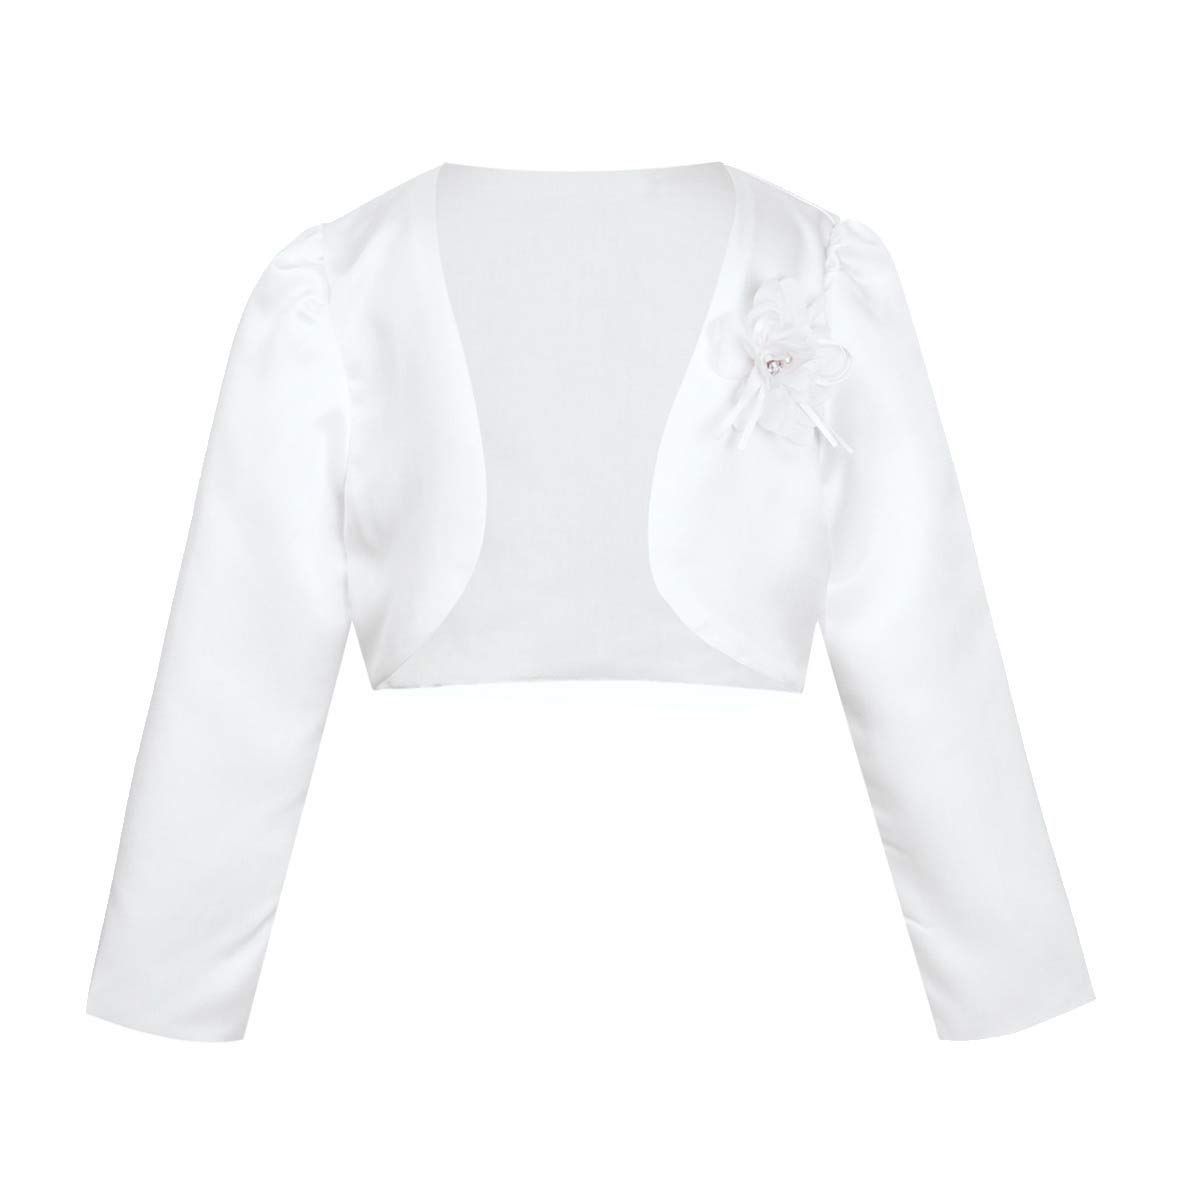 FEESHOW Kids Girls Long Sleeve Satin Bolero Shrug Jacket Short